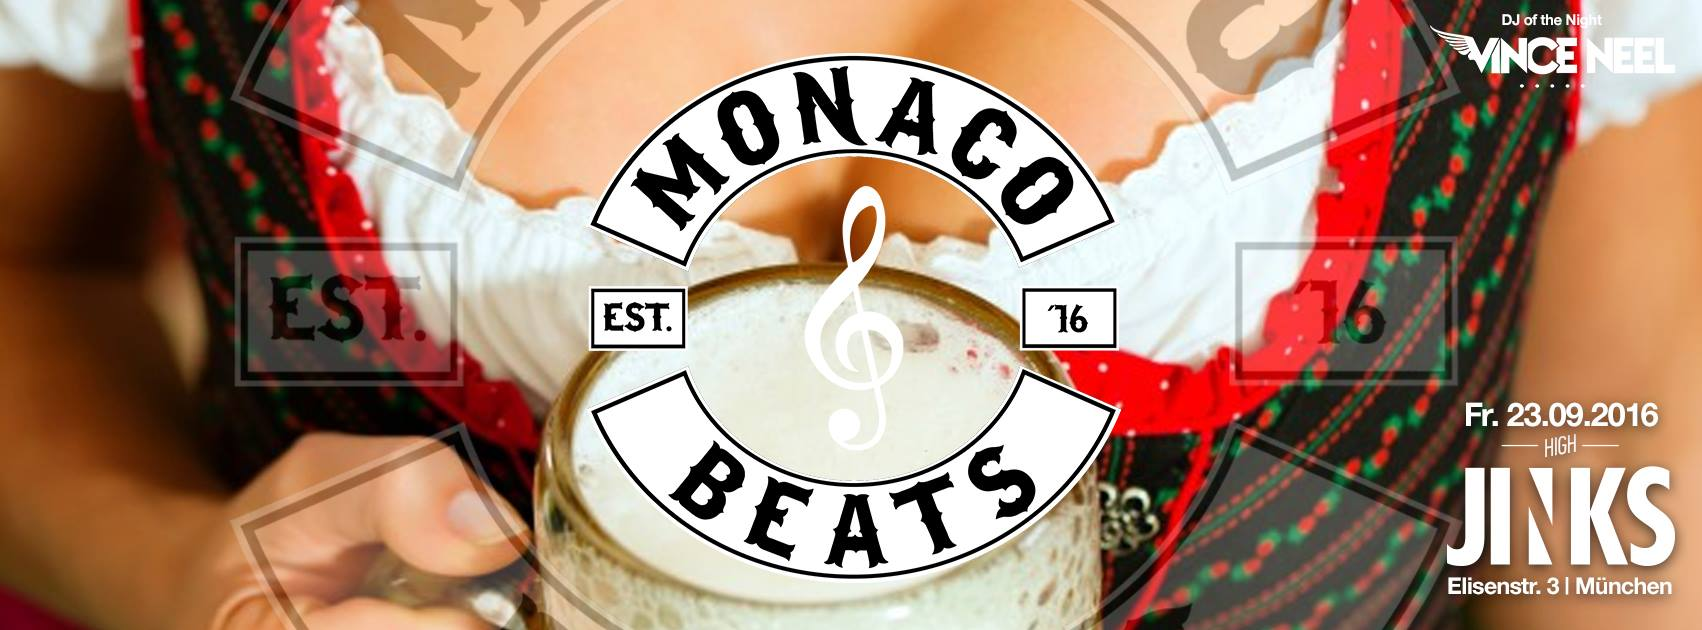 monaco-beats-after-wiesn-2016